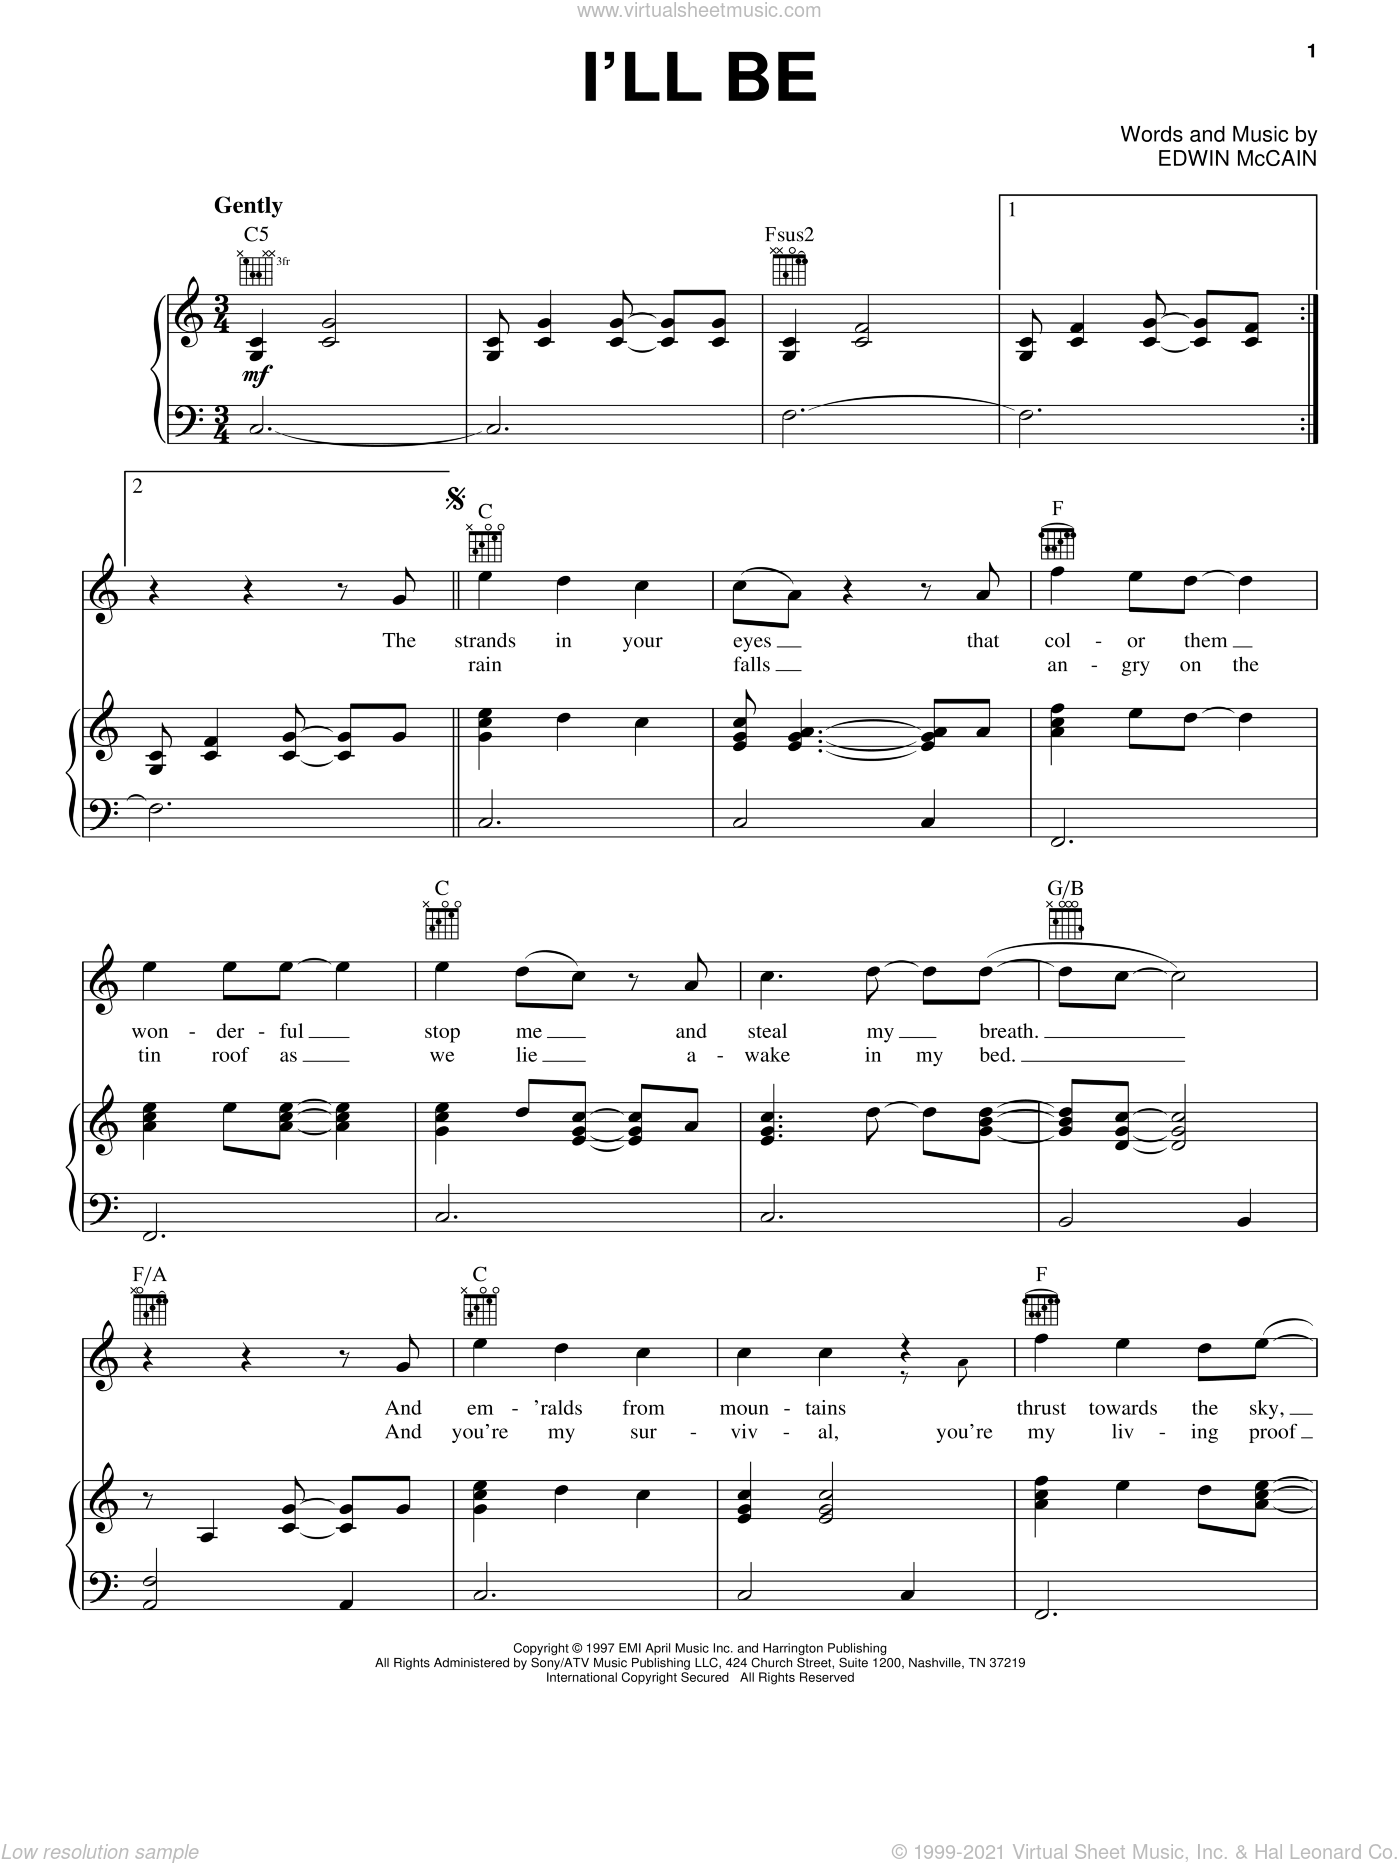 I'll Be sheet music for voice, piano or guitar by Edwin McCain. Score Image Preview.